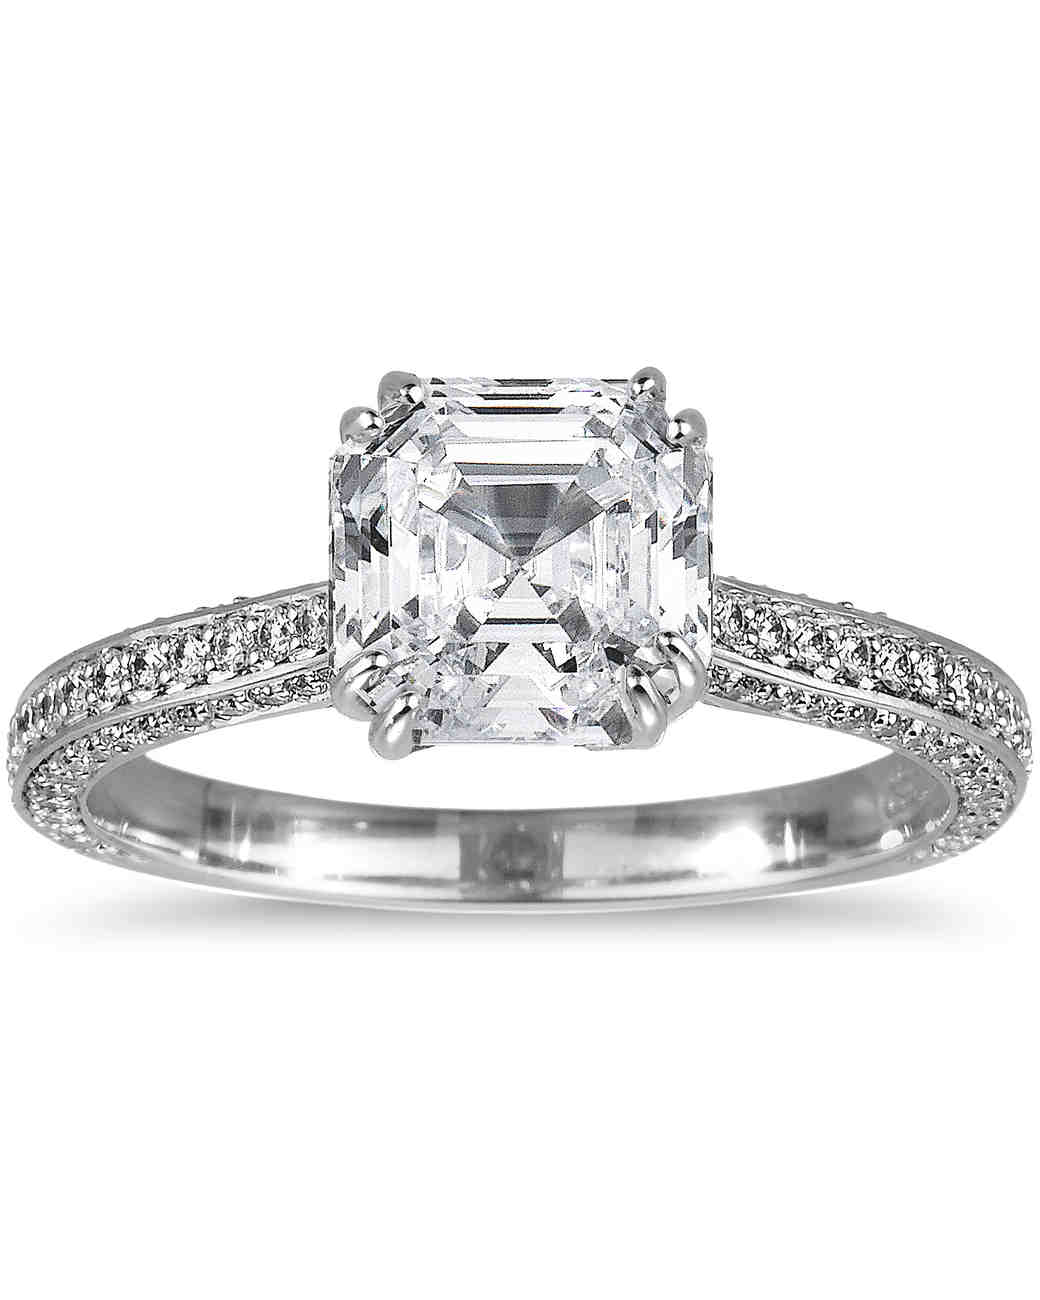 asschercut diamond engagement rings martha stewart weddings